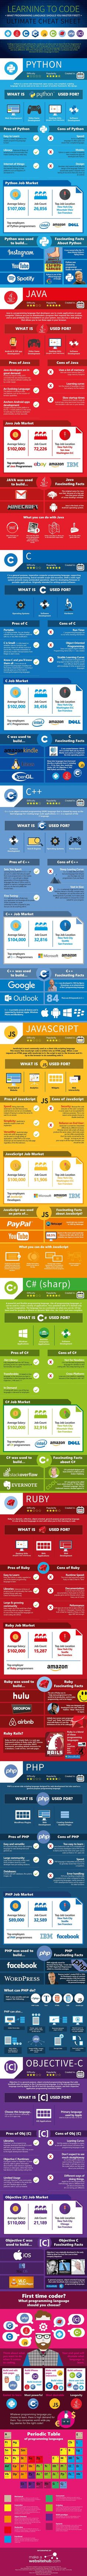 Should You Learn Python, C, or Ruby to Be a Top Coder? (Infographic) | Inc.com: Maybe something for https://Addgeeks.com ?